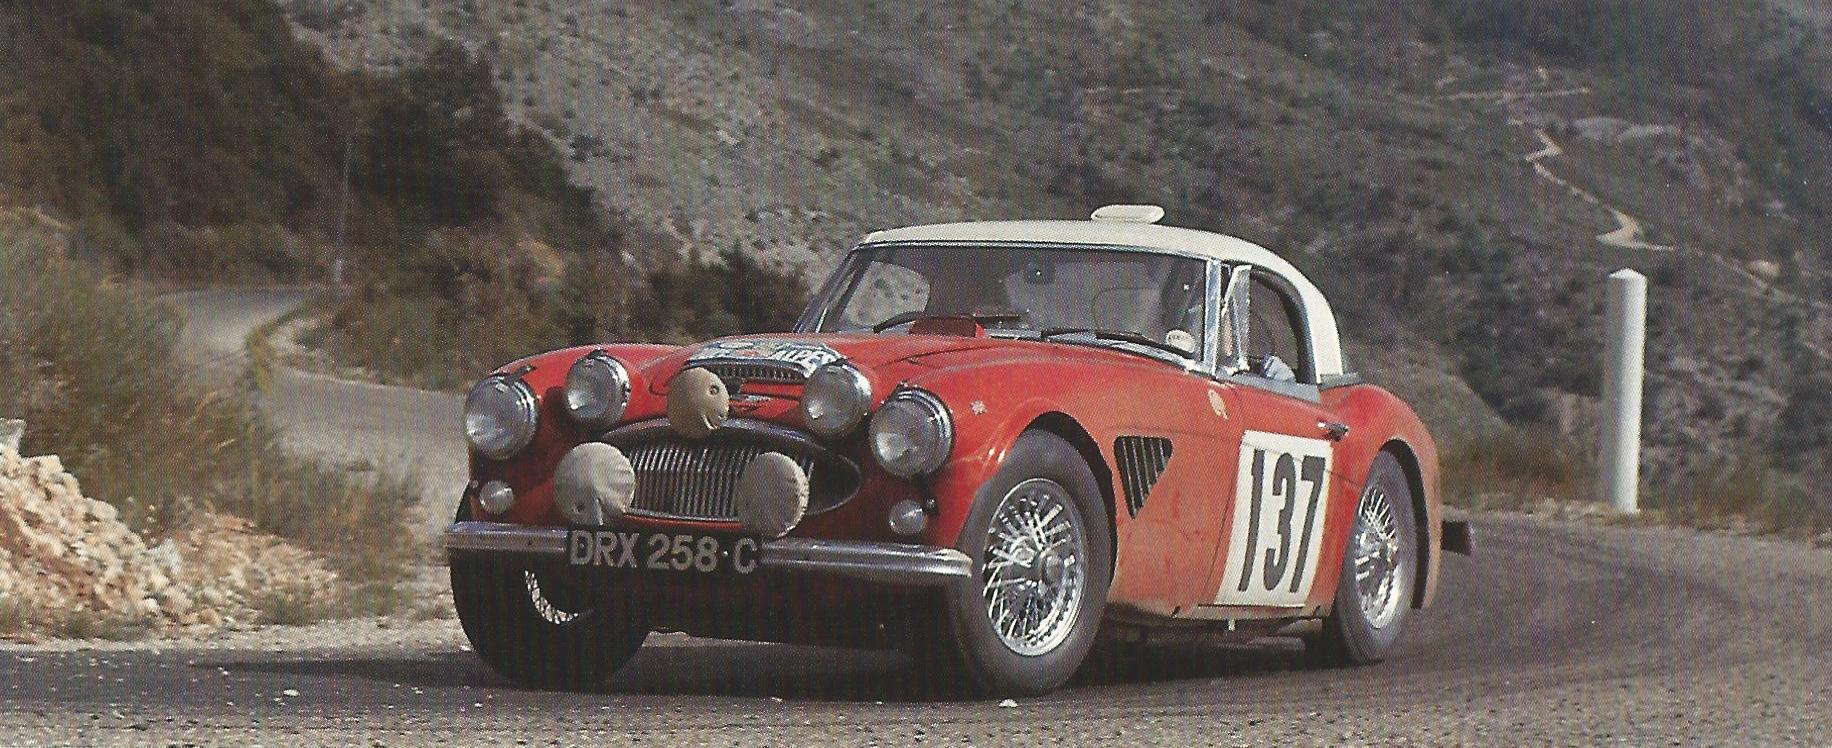 big-healey-rally-car-2.jpg